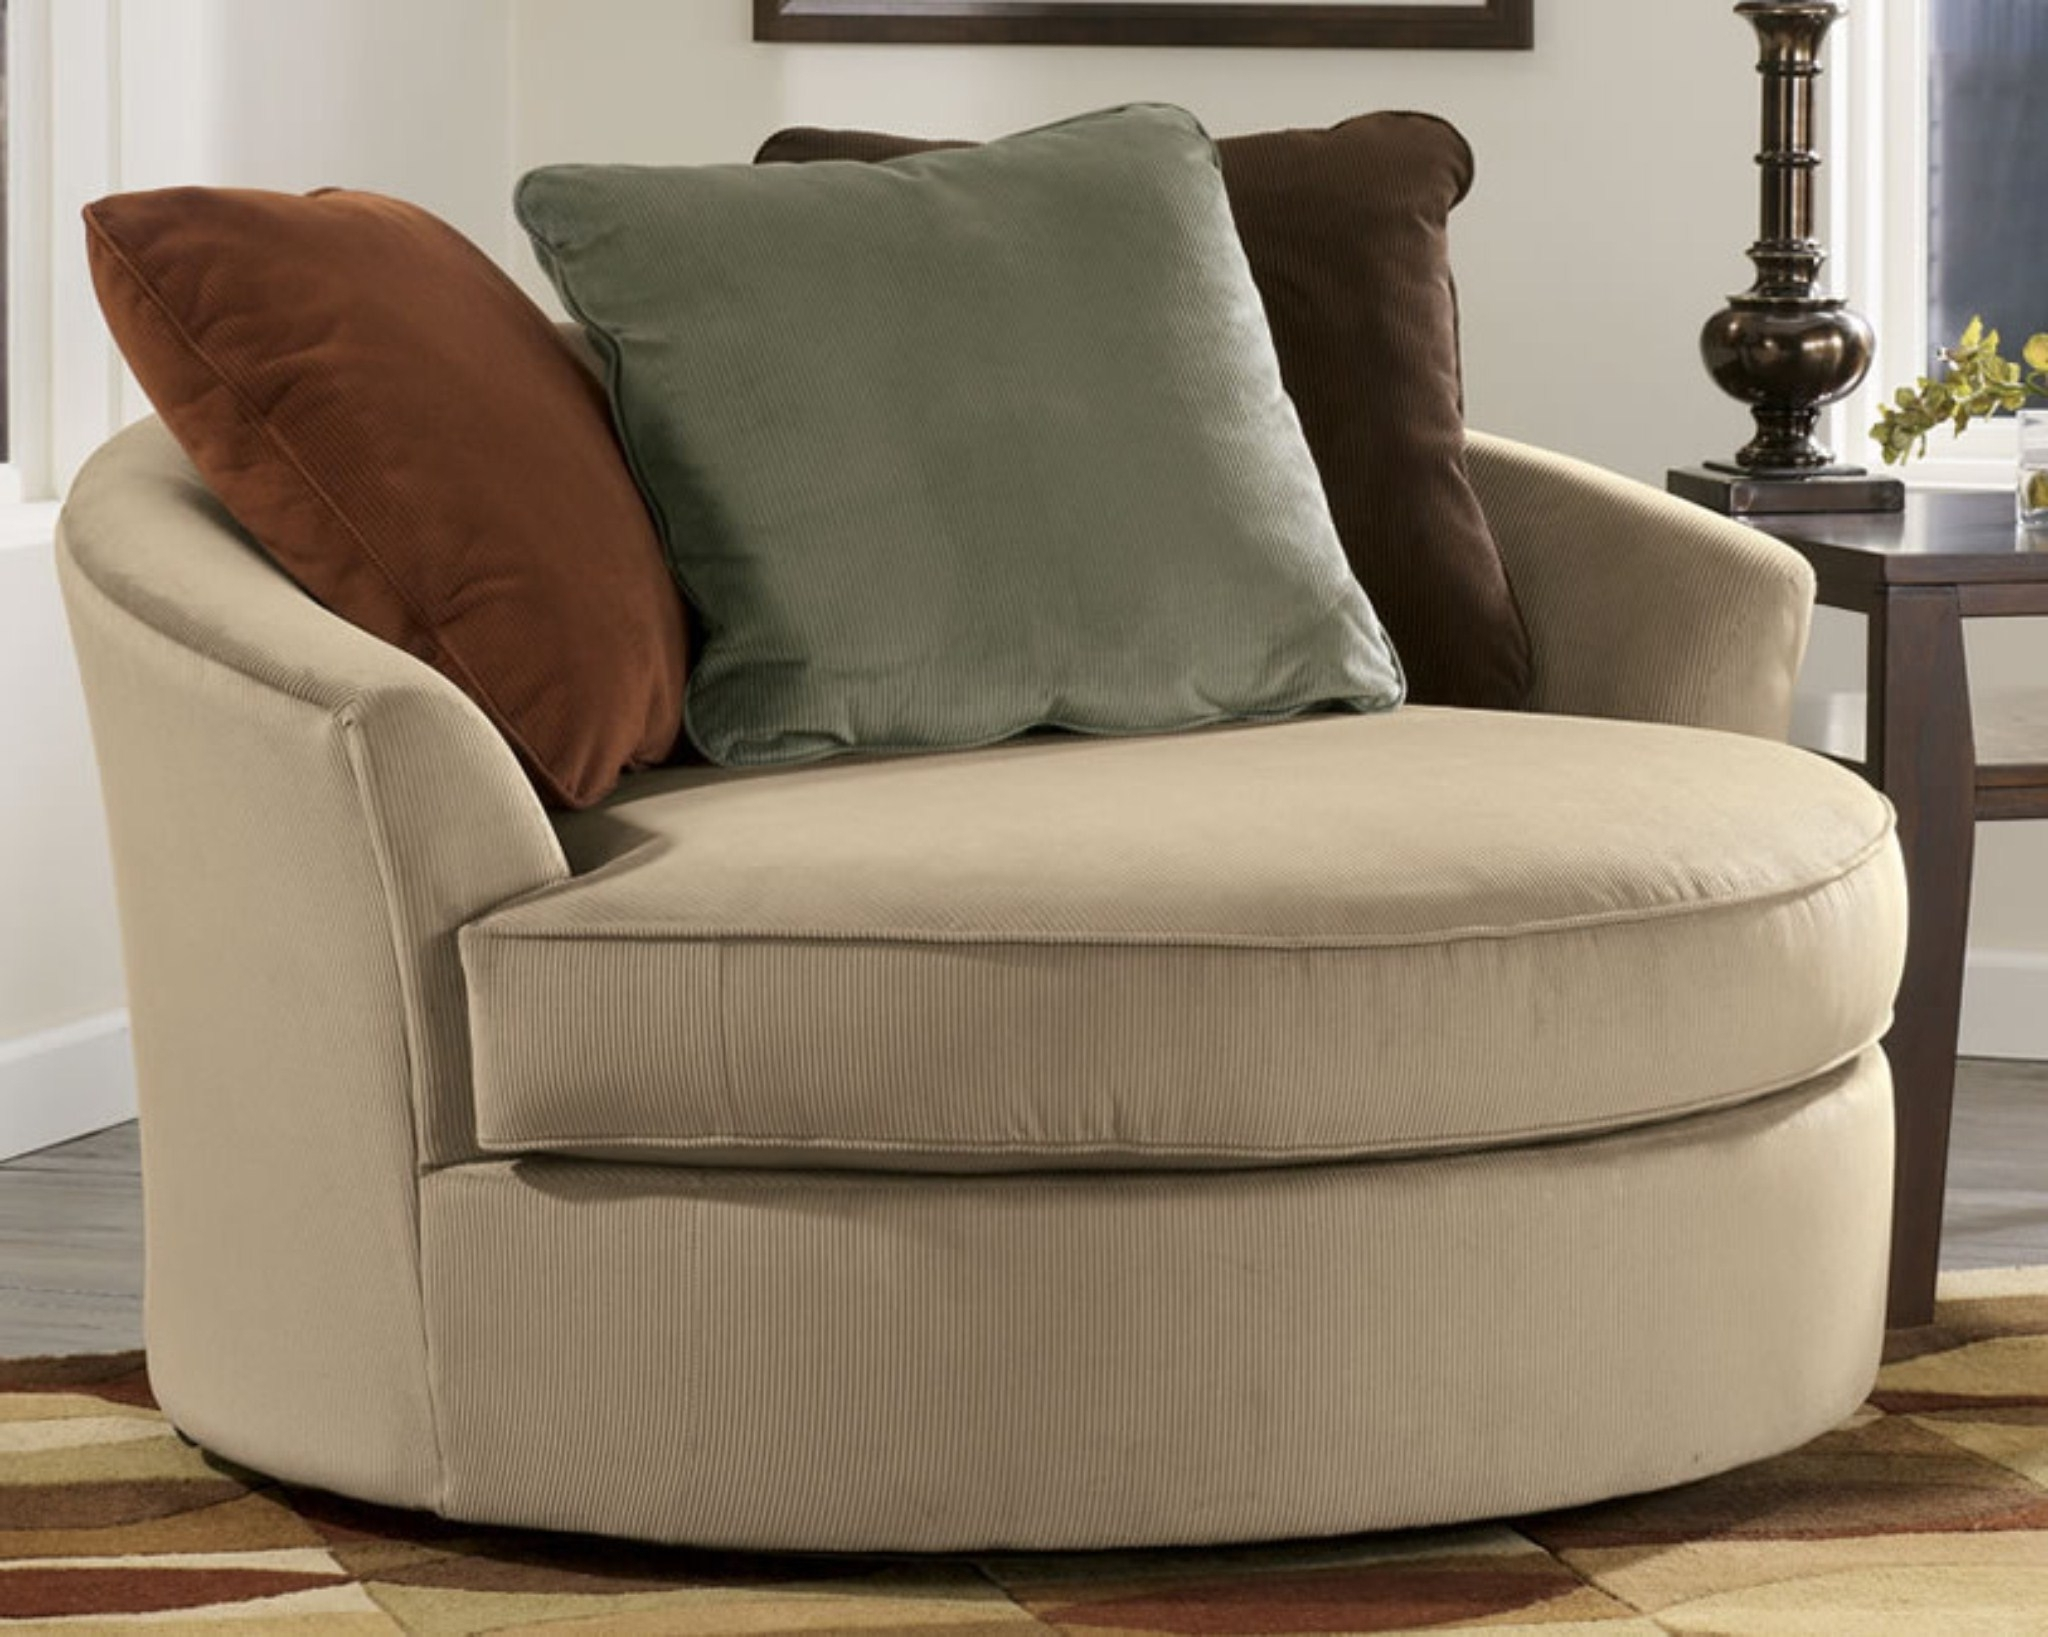 Sofa Chairs For Living Room With Preferred Sofa : Round Sofa Chair Living Room Furniture Round' Furniture (View 4 of 20)